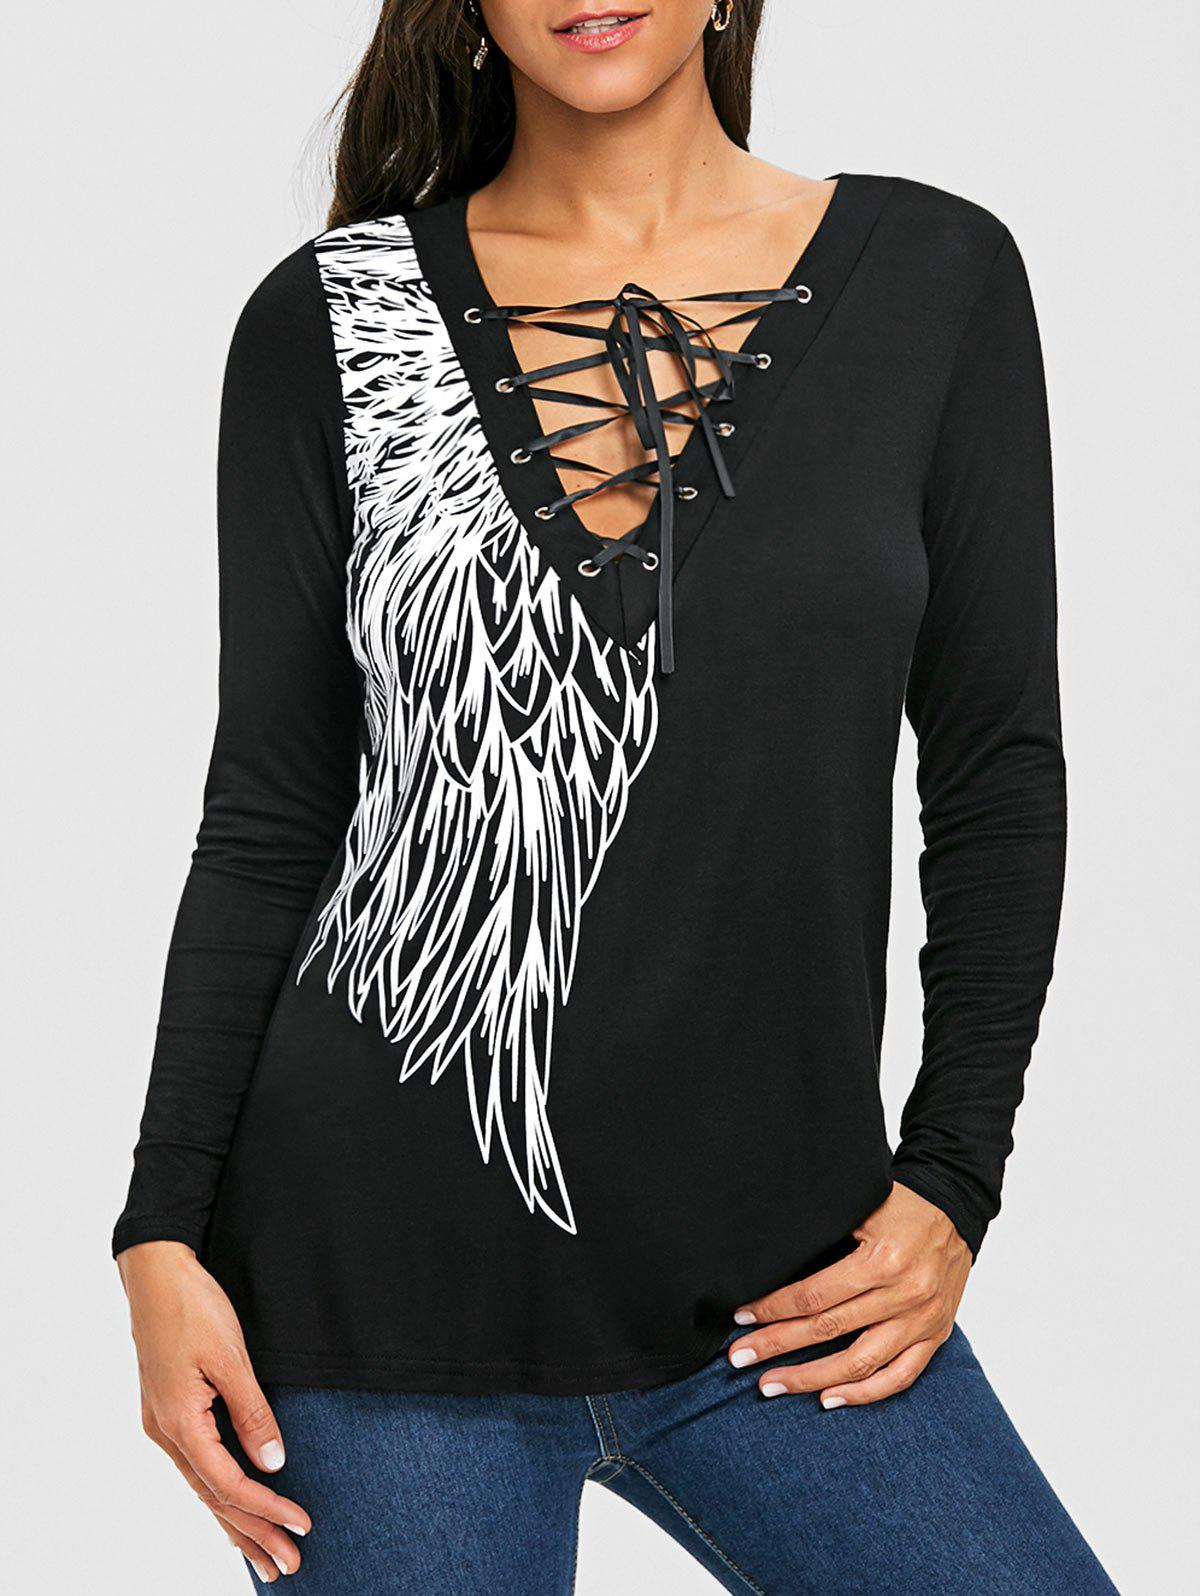 Fancy Long Sleeve Wing Print Lace Up Top